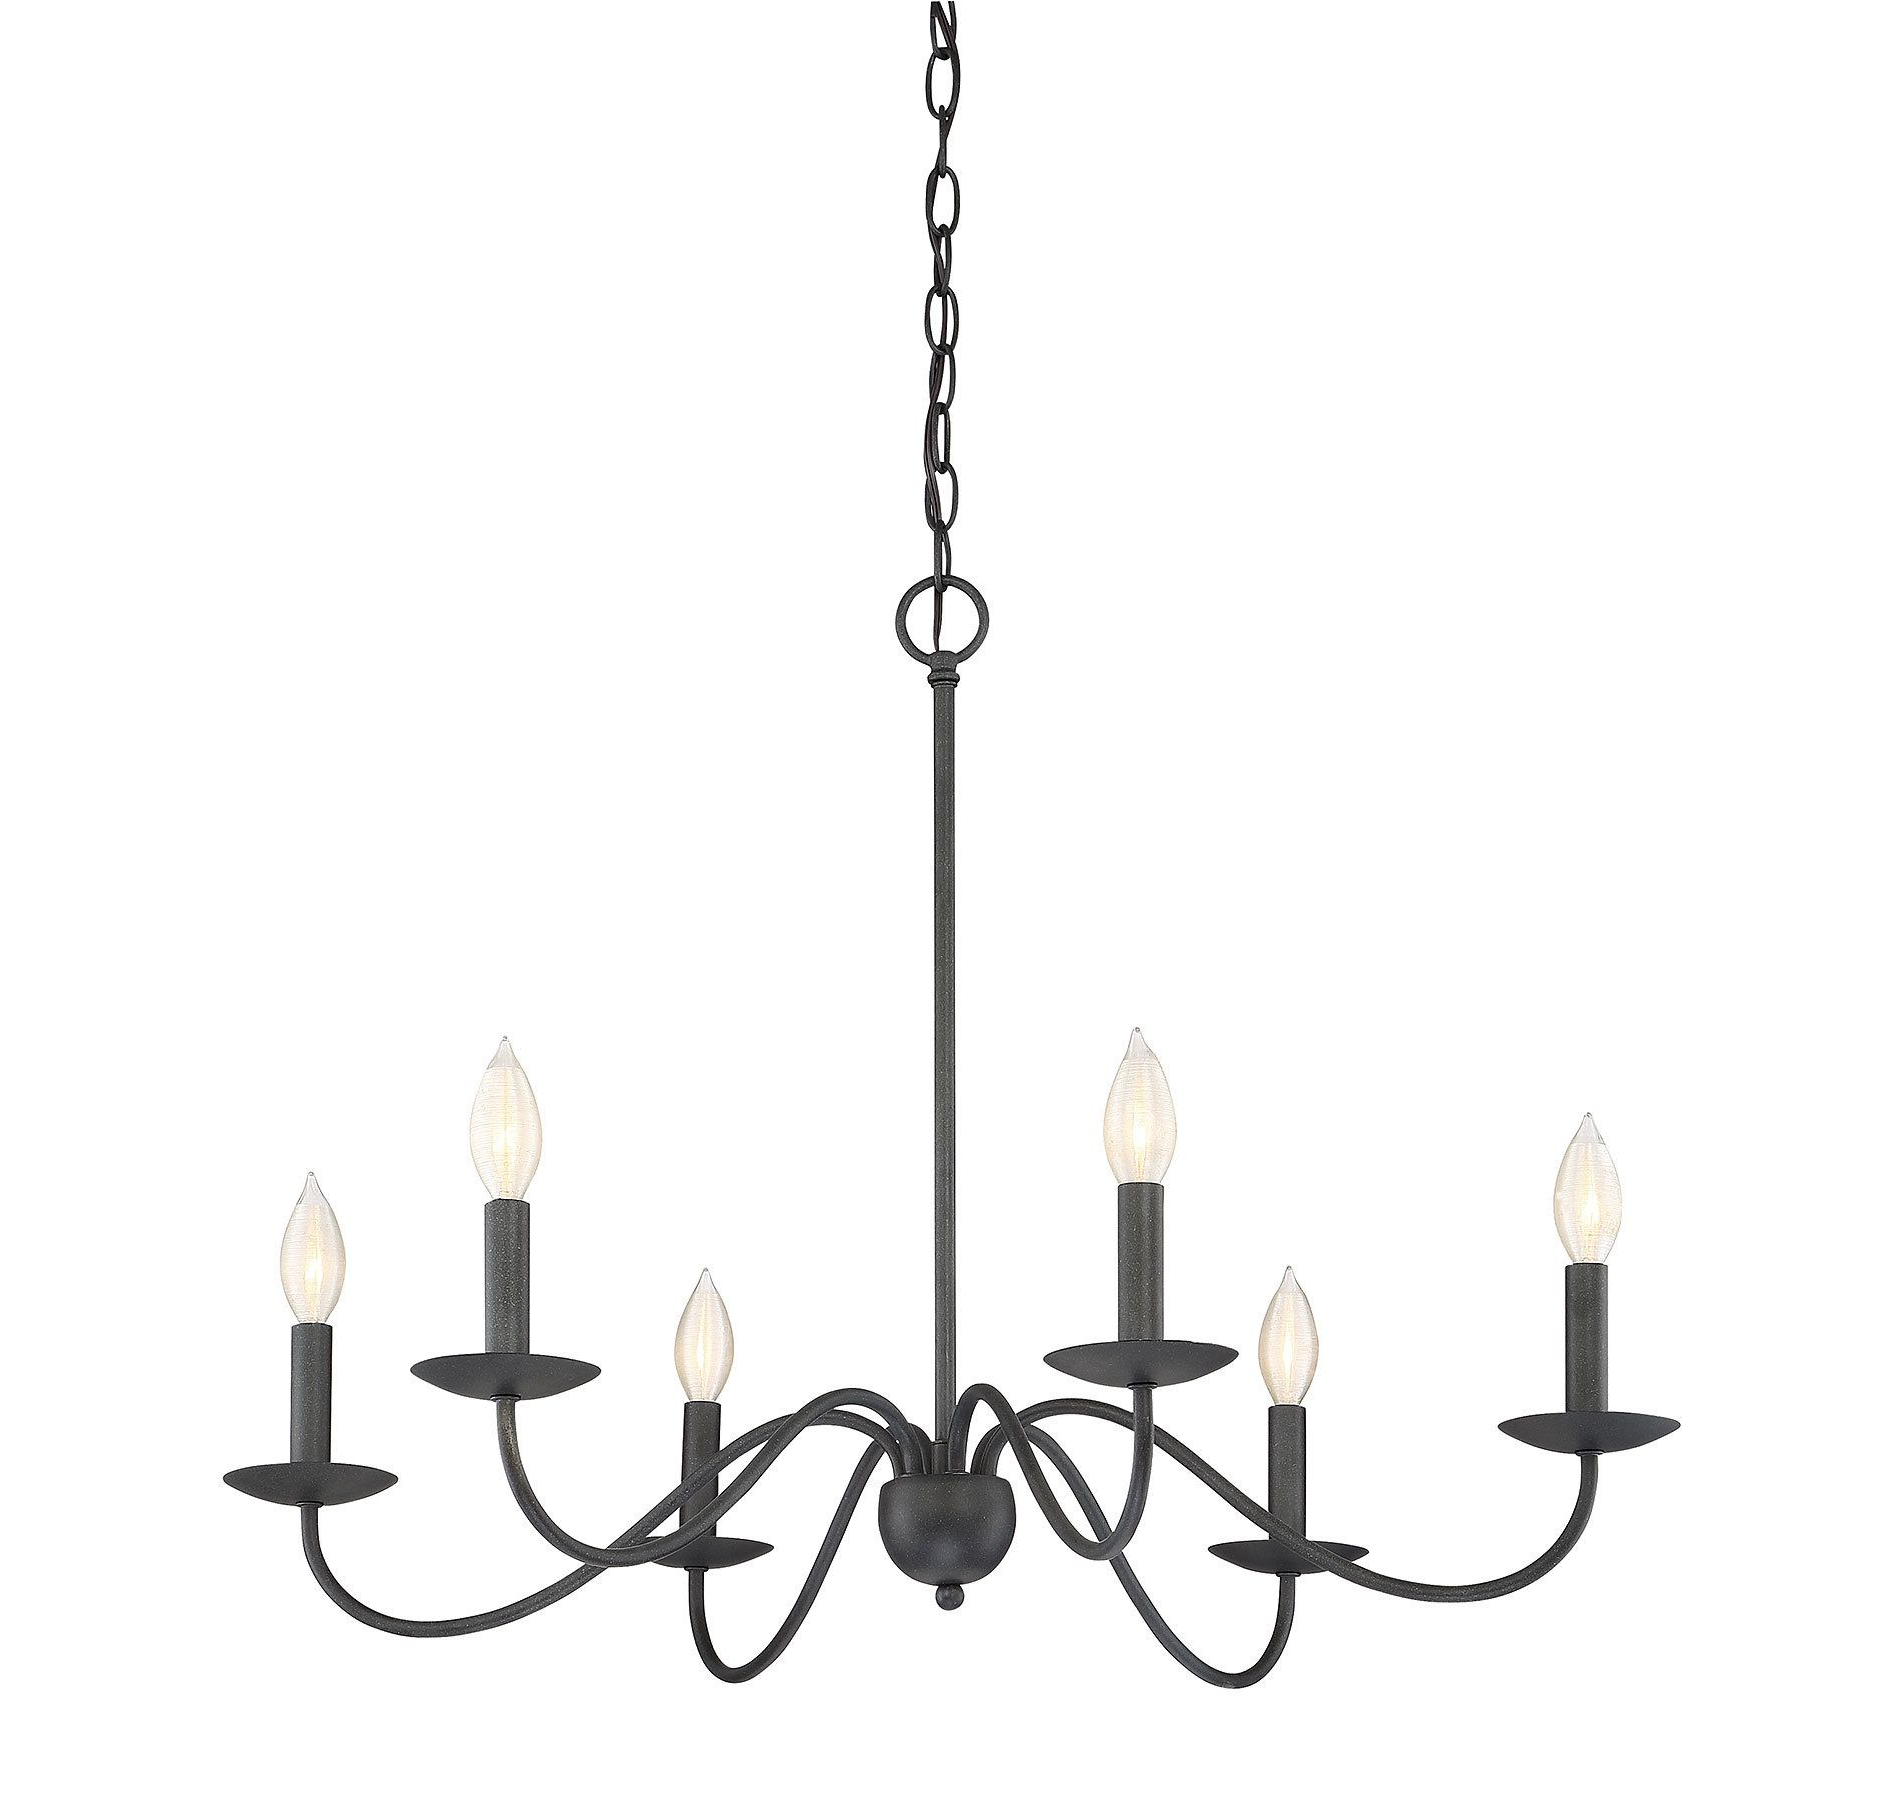 Hamza 6 Light Candle Style Chandeliers Intended For Favorite Perseus 6 Light Candle Style Chandelier (Gallery 9 of 25)